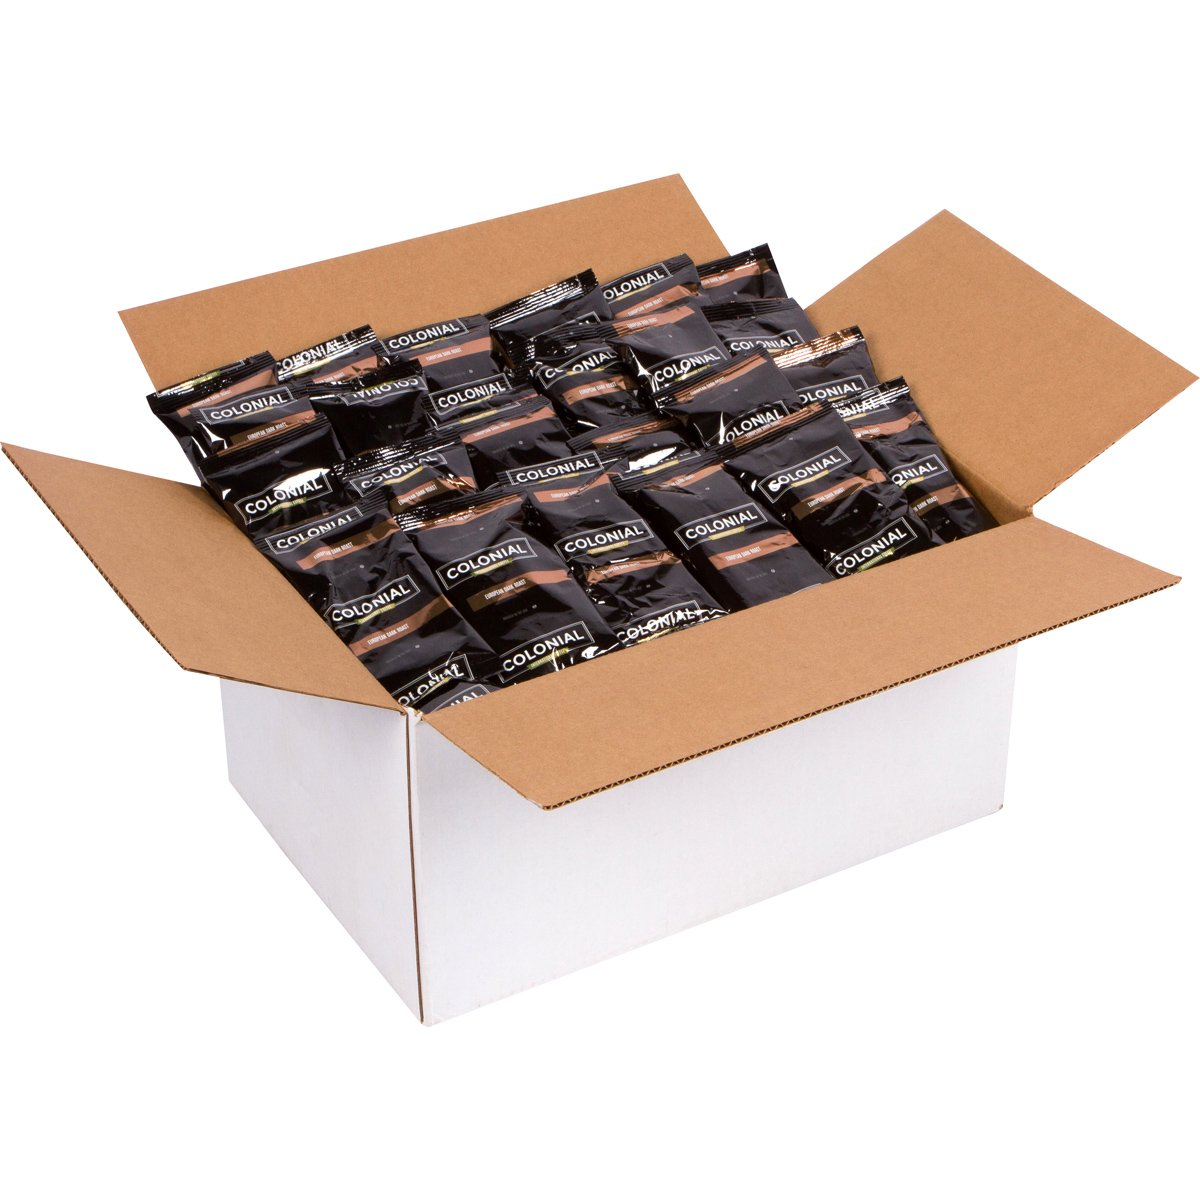 European Style Pre-Measured 2.5 OZ Ground Coffee Fraction Packs, 100 Pouches/box, Dark Roast, For Drip Coffee Makers